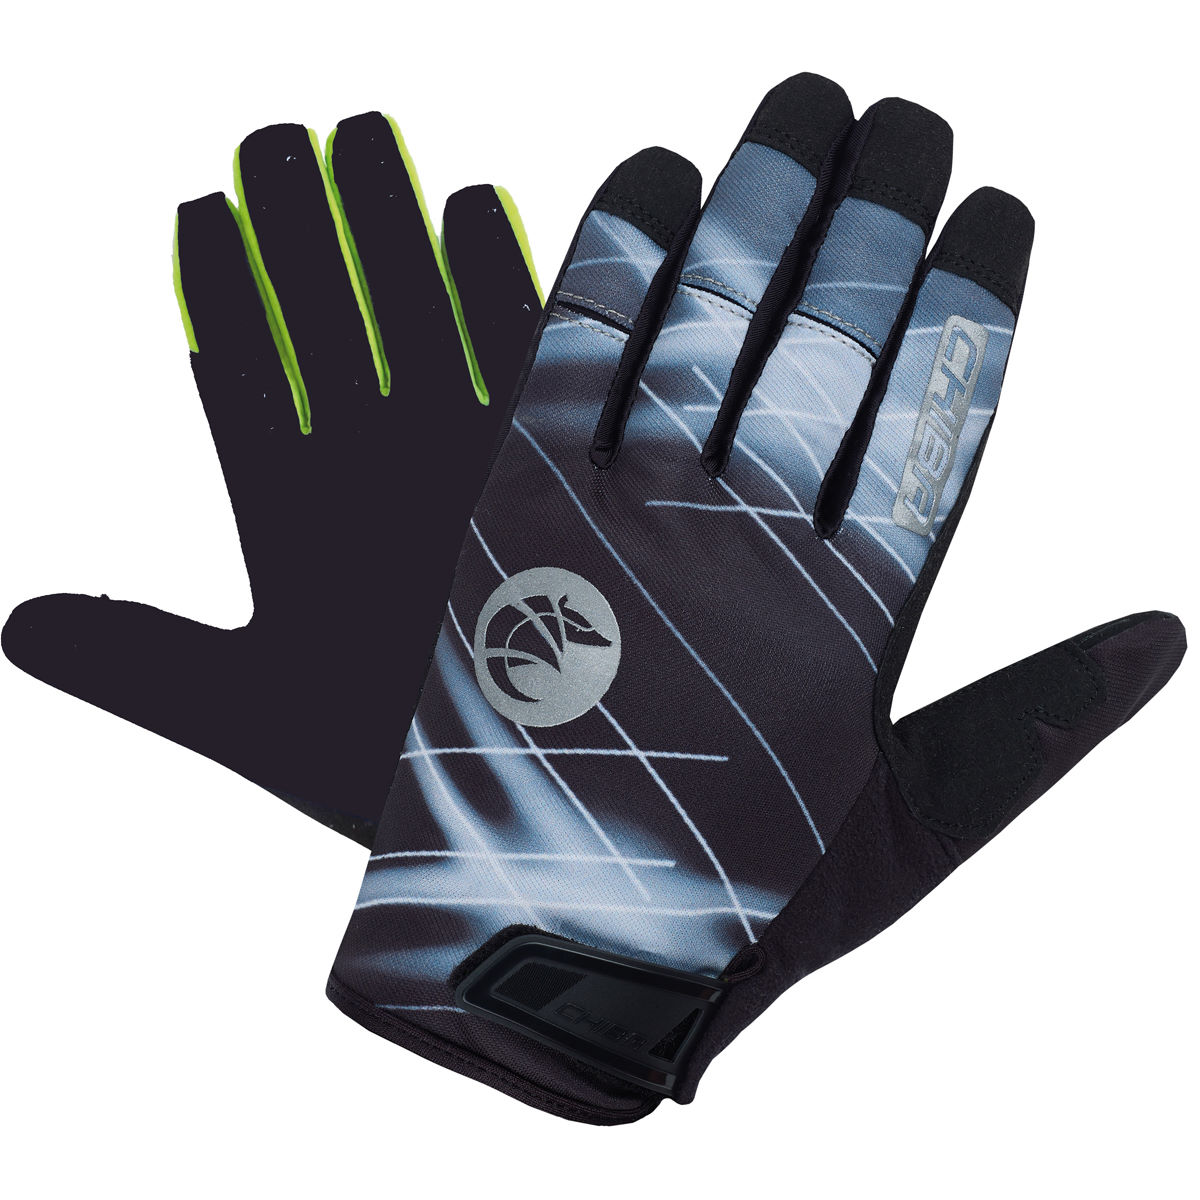 Chiba Twister Full Fingered Gloves - Guantes